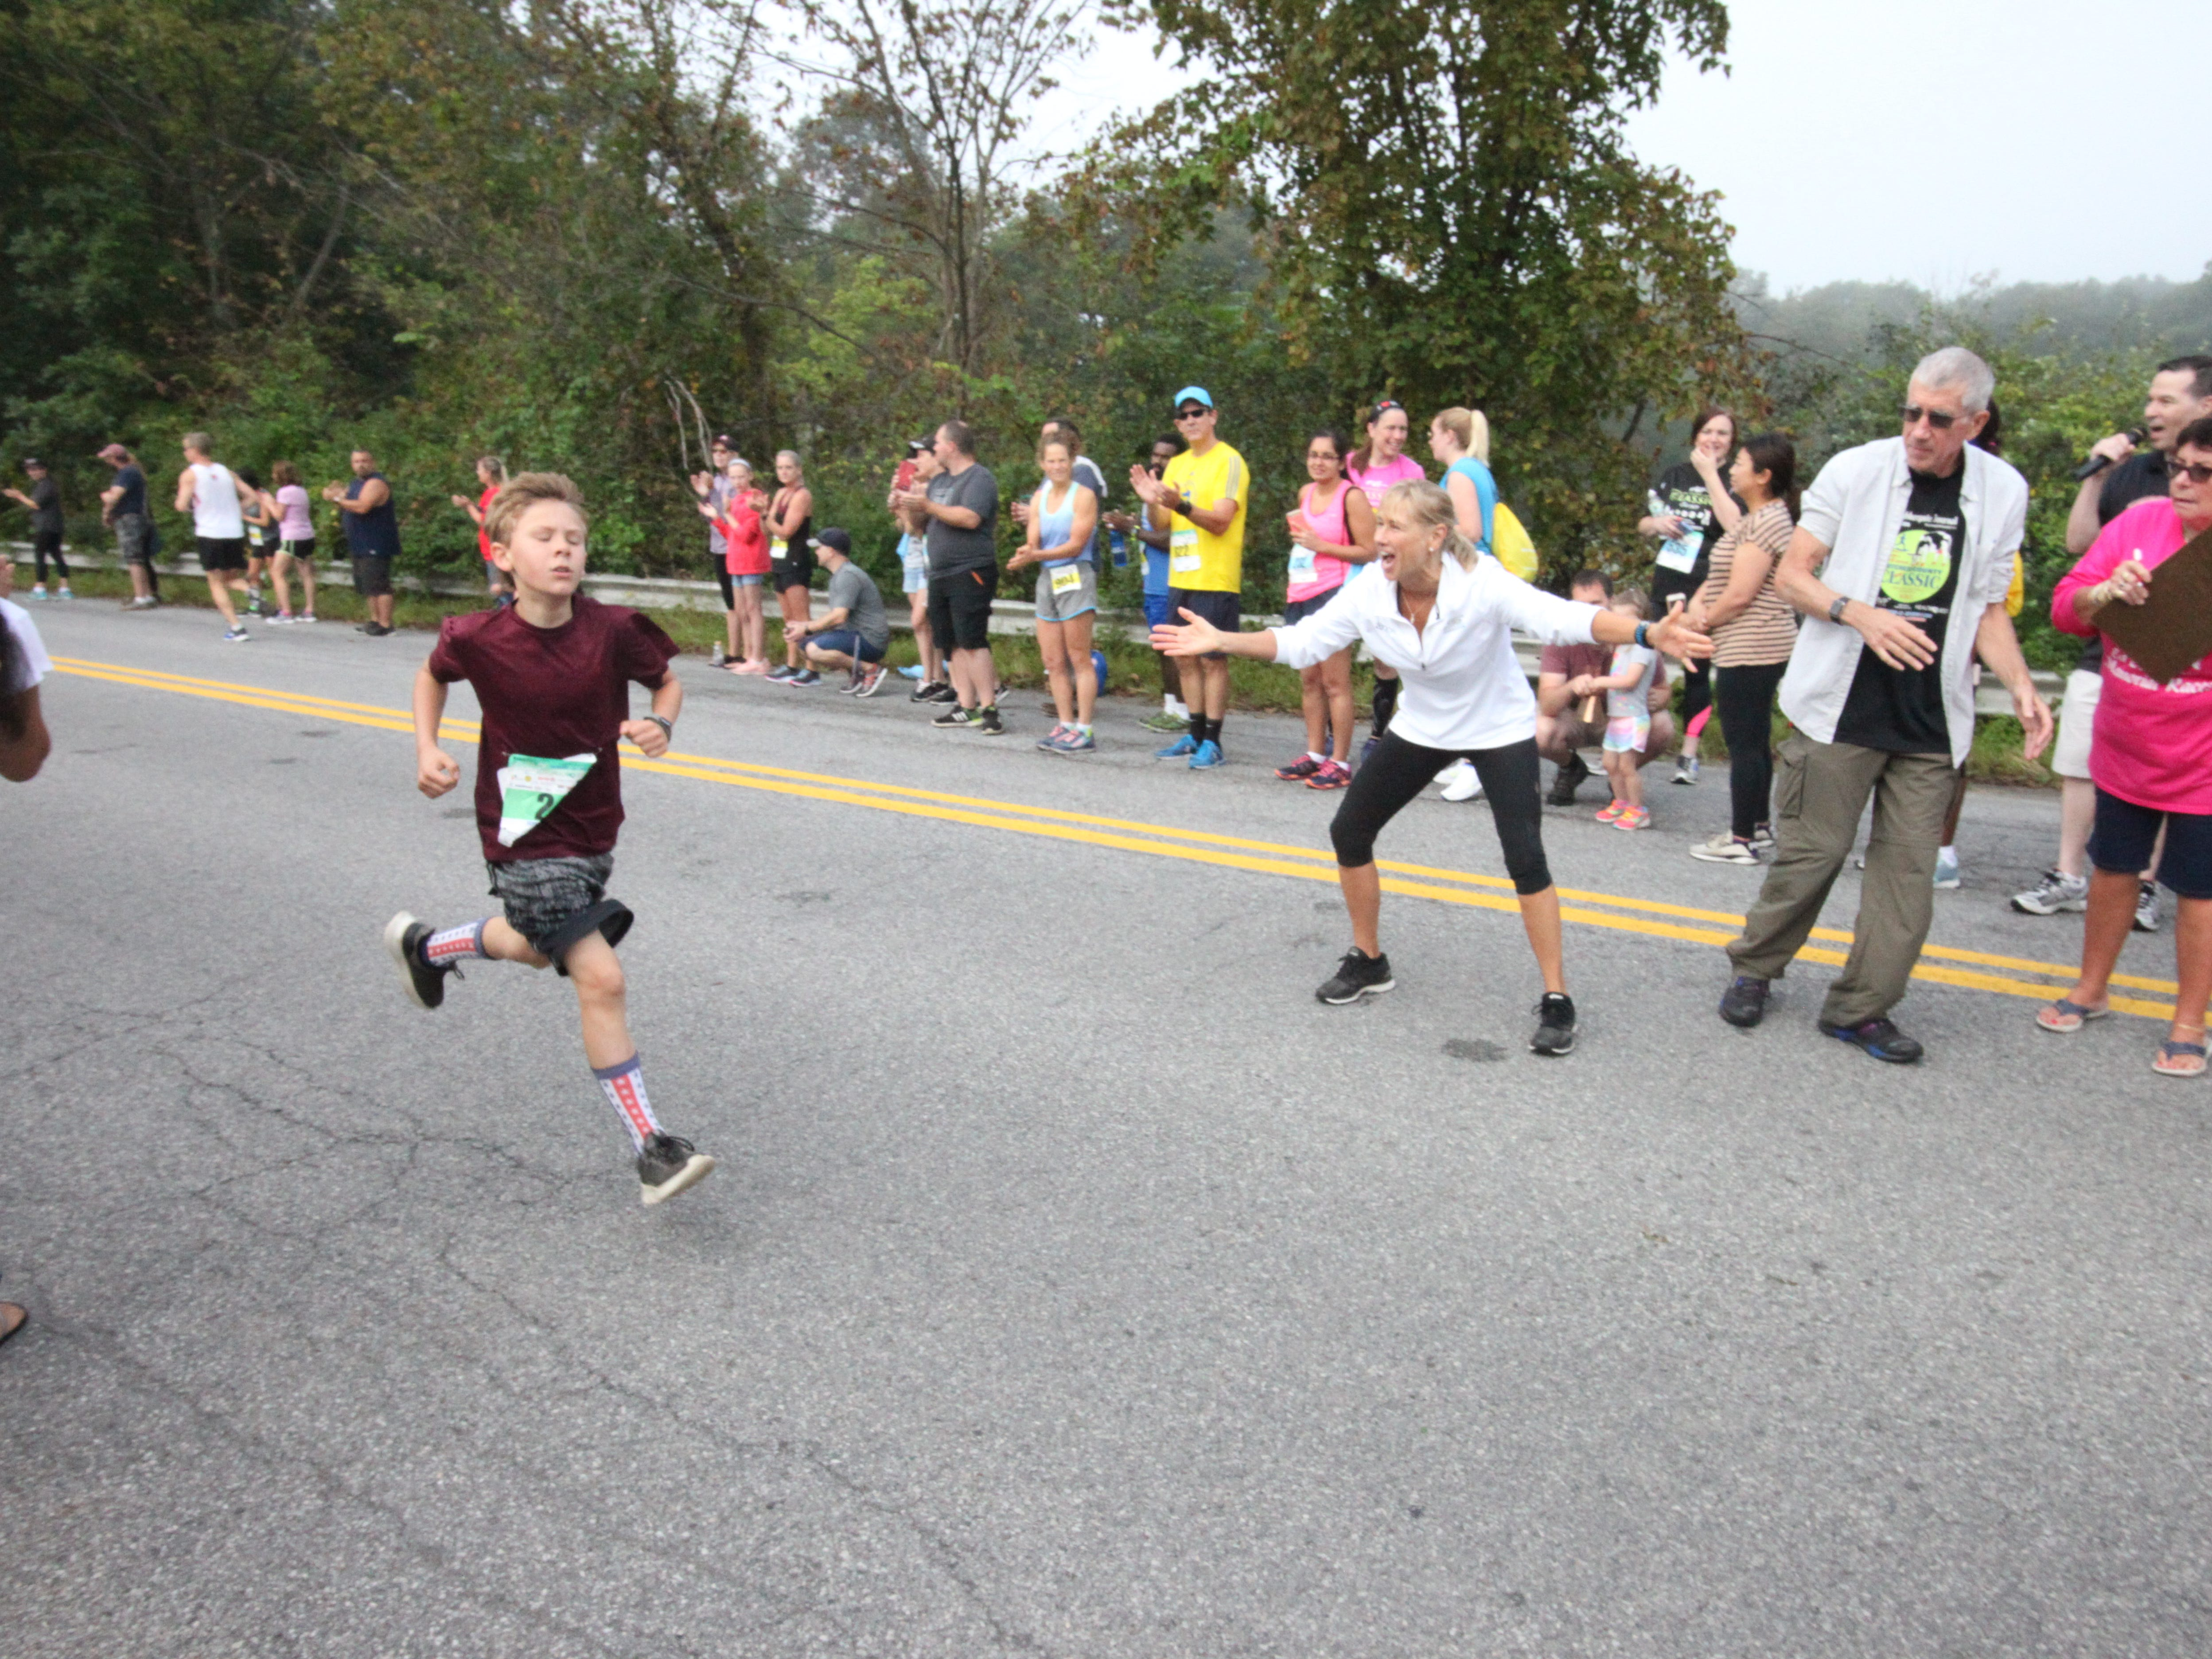 A young runner is implored to finish strong as he heads for the finish line of the 1-mile kids race at the Dutchess County Classic.